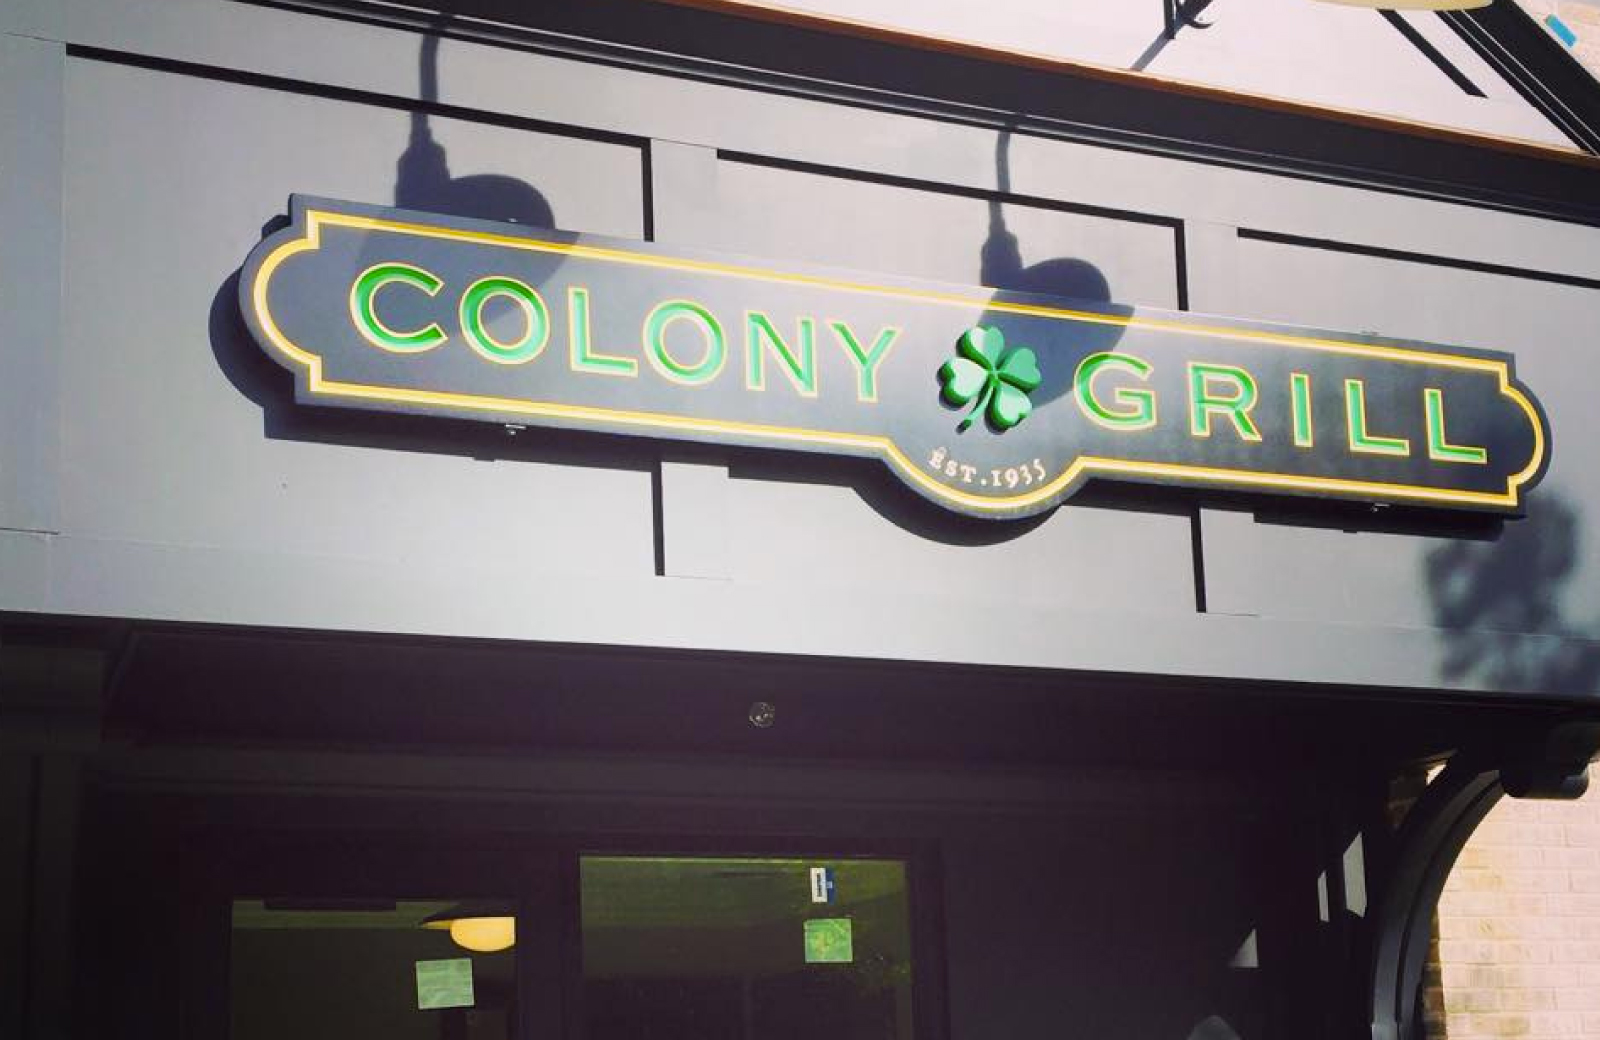 horizontal navy and green Colony Grill restaurant sign with a shamrock in the center - The Waypointe Apts